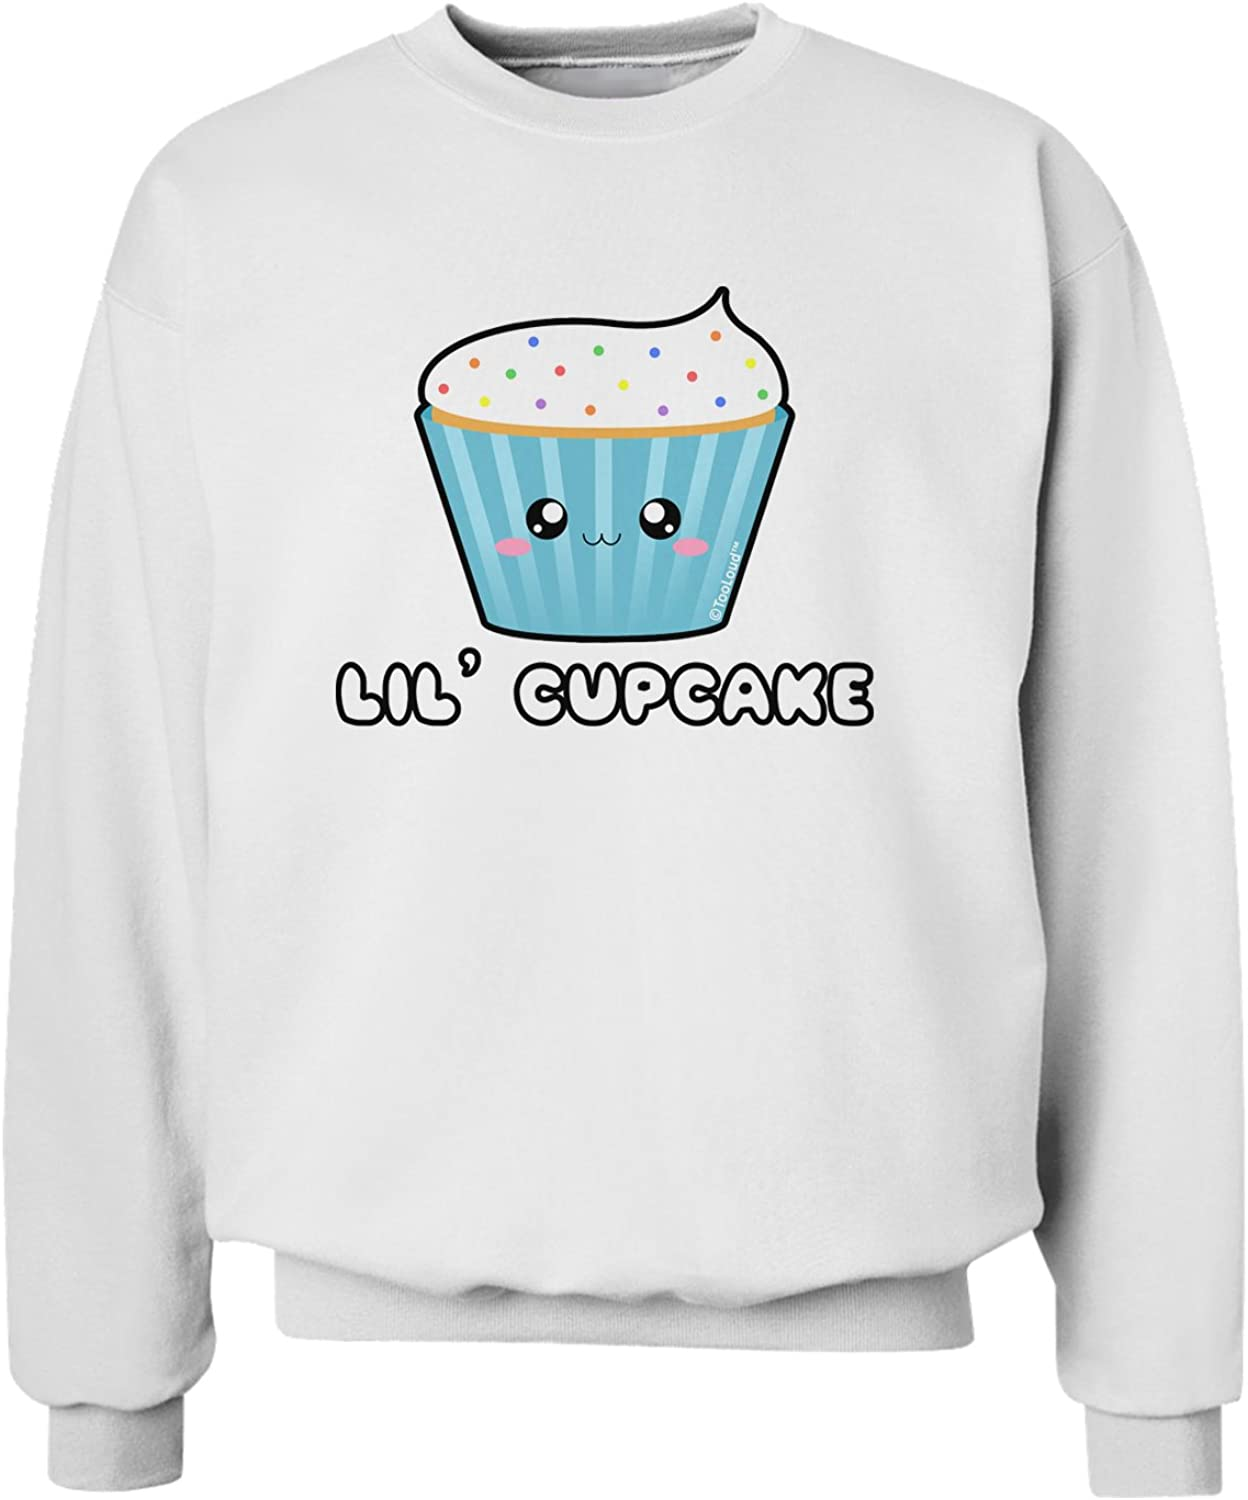 TooLoud Cute Cupcake with Sprinkles Lil Cupcake Sweatshirt